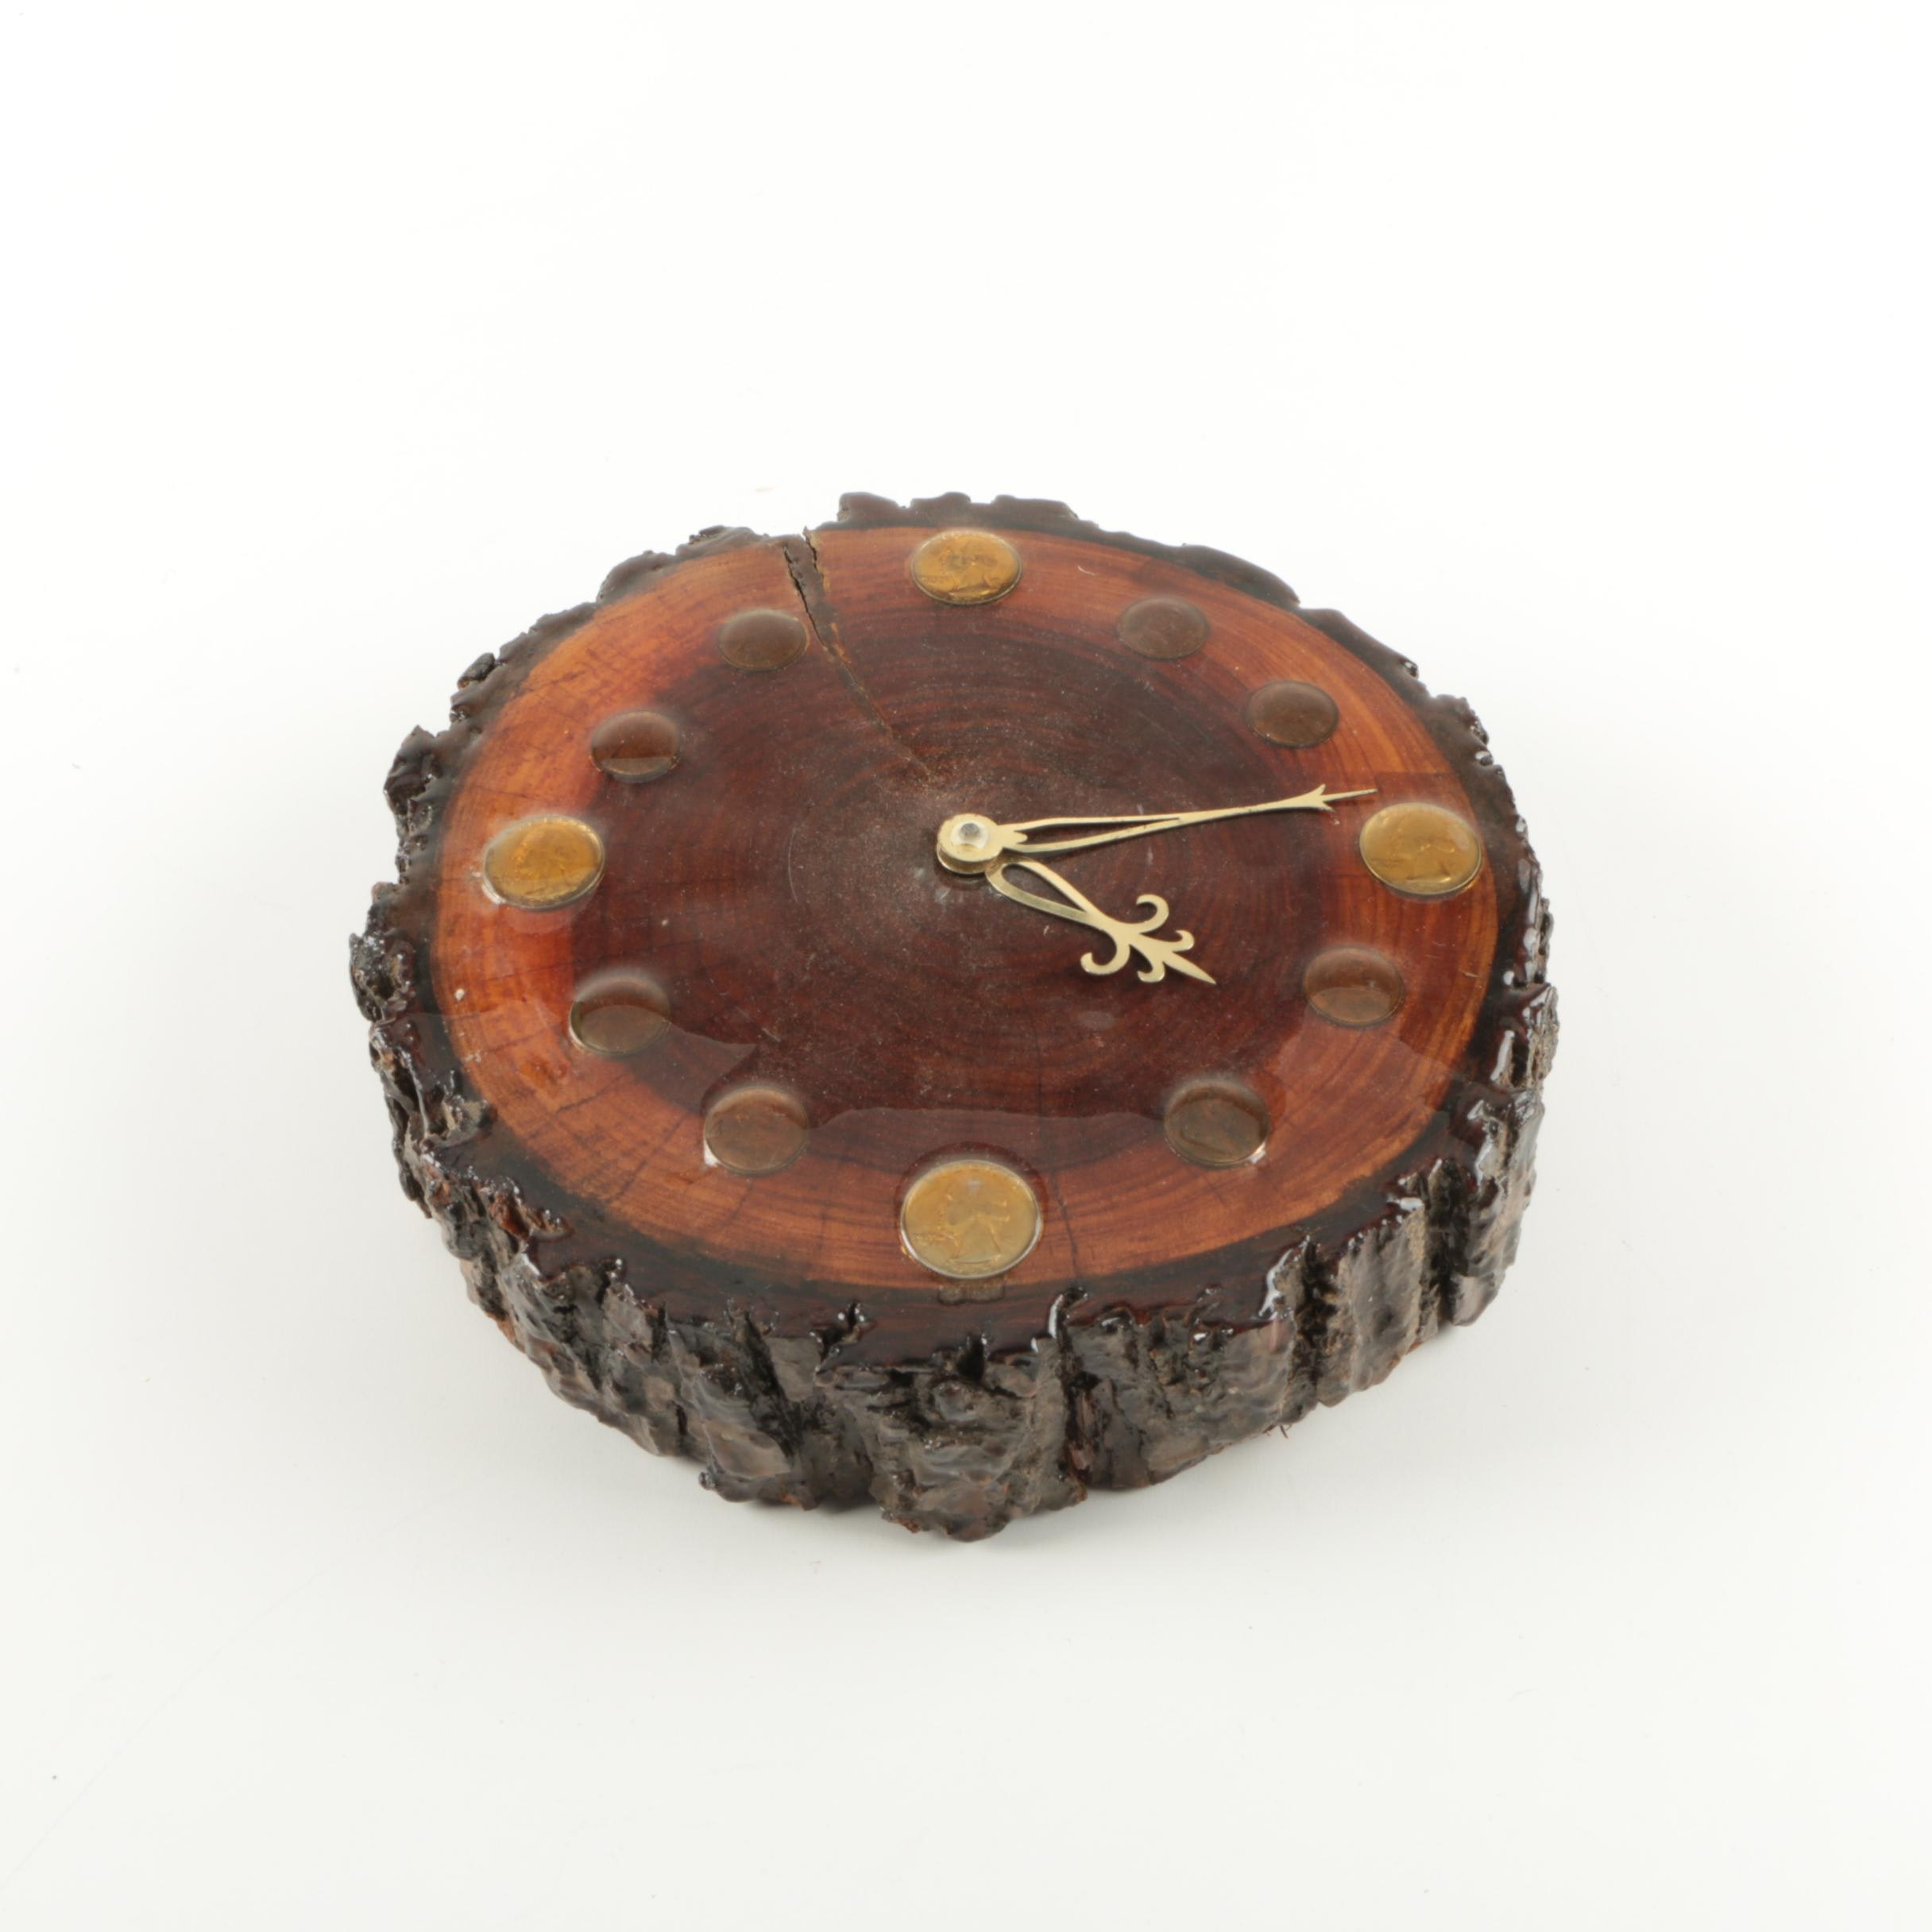 Tree Slice Wooden Wall Clock featuring U.S. Coinage